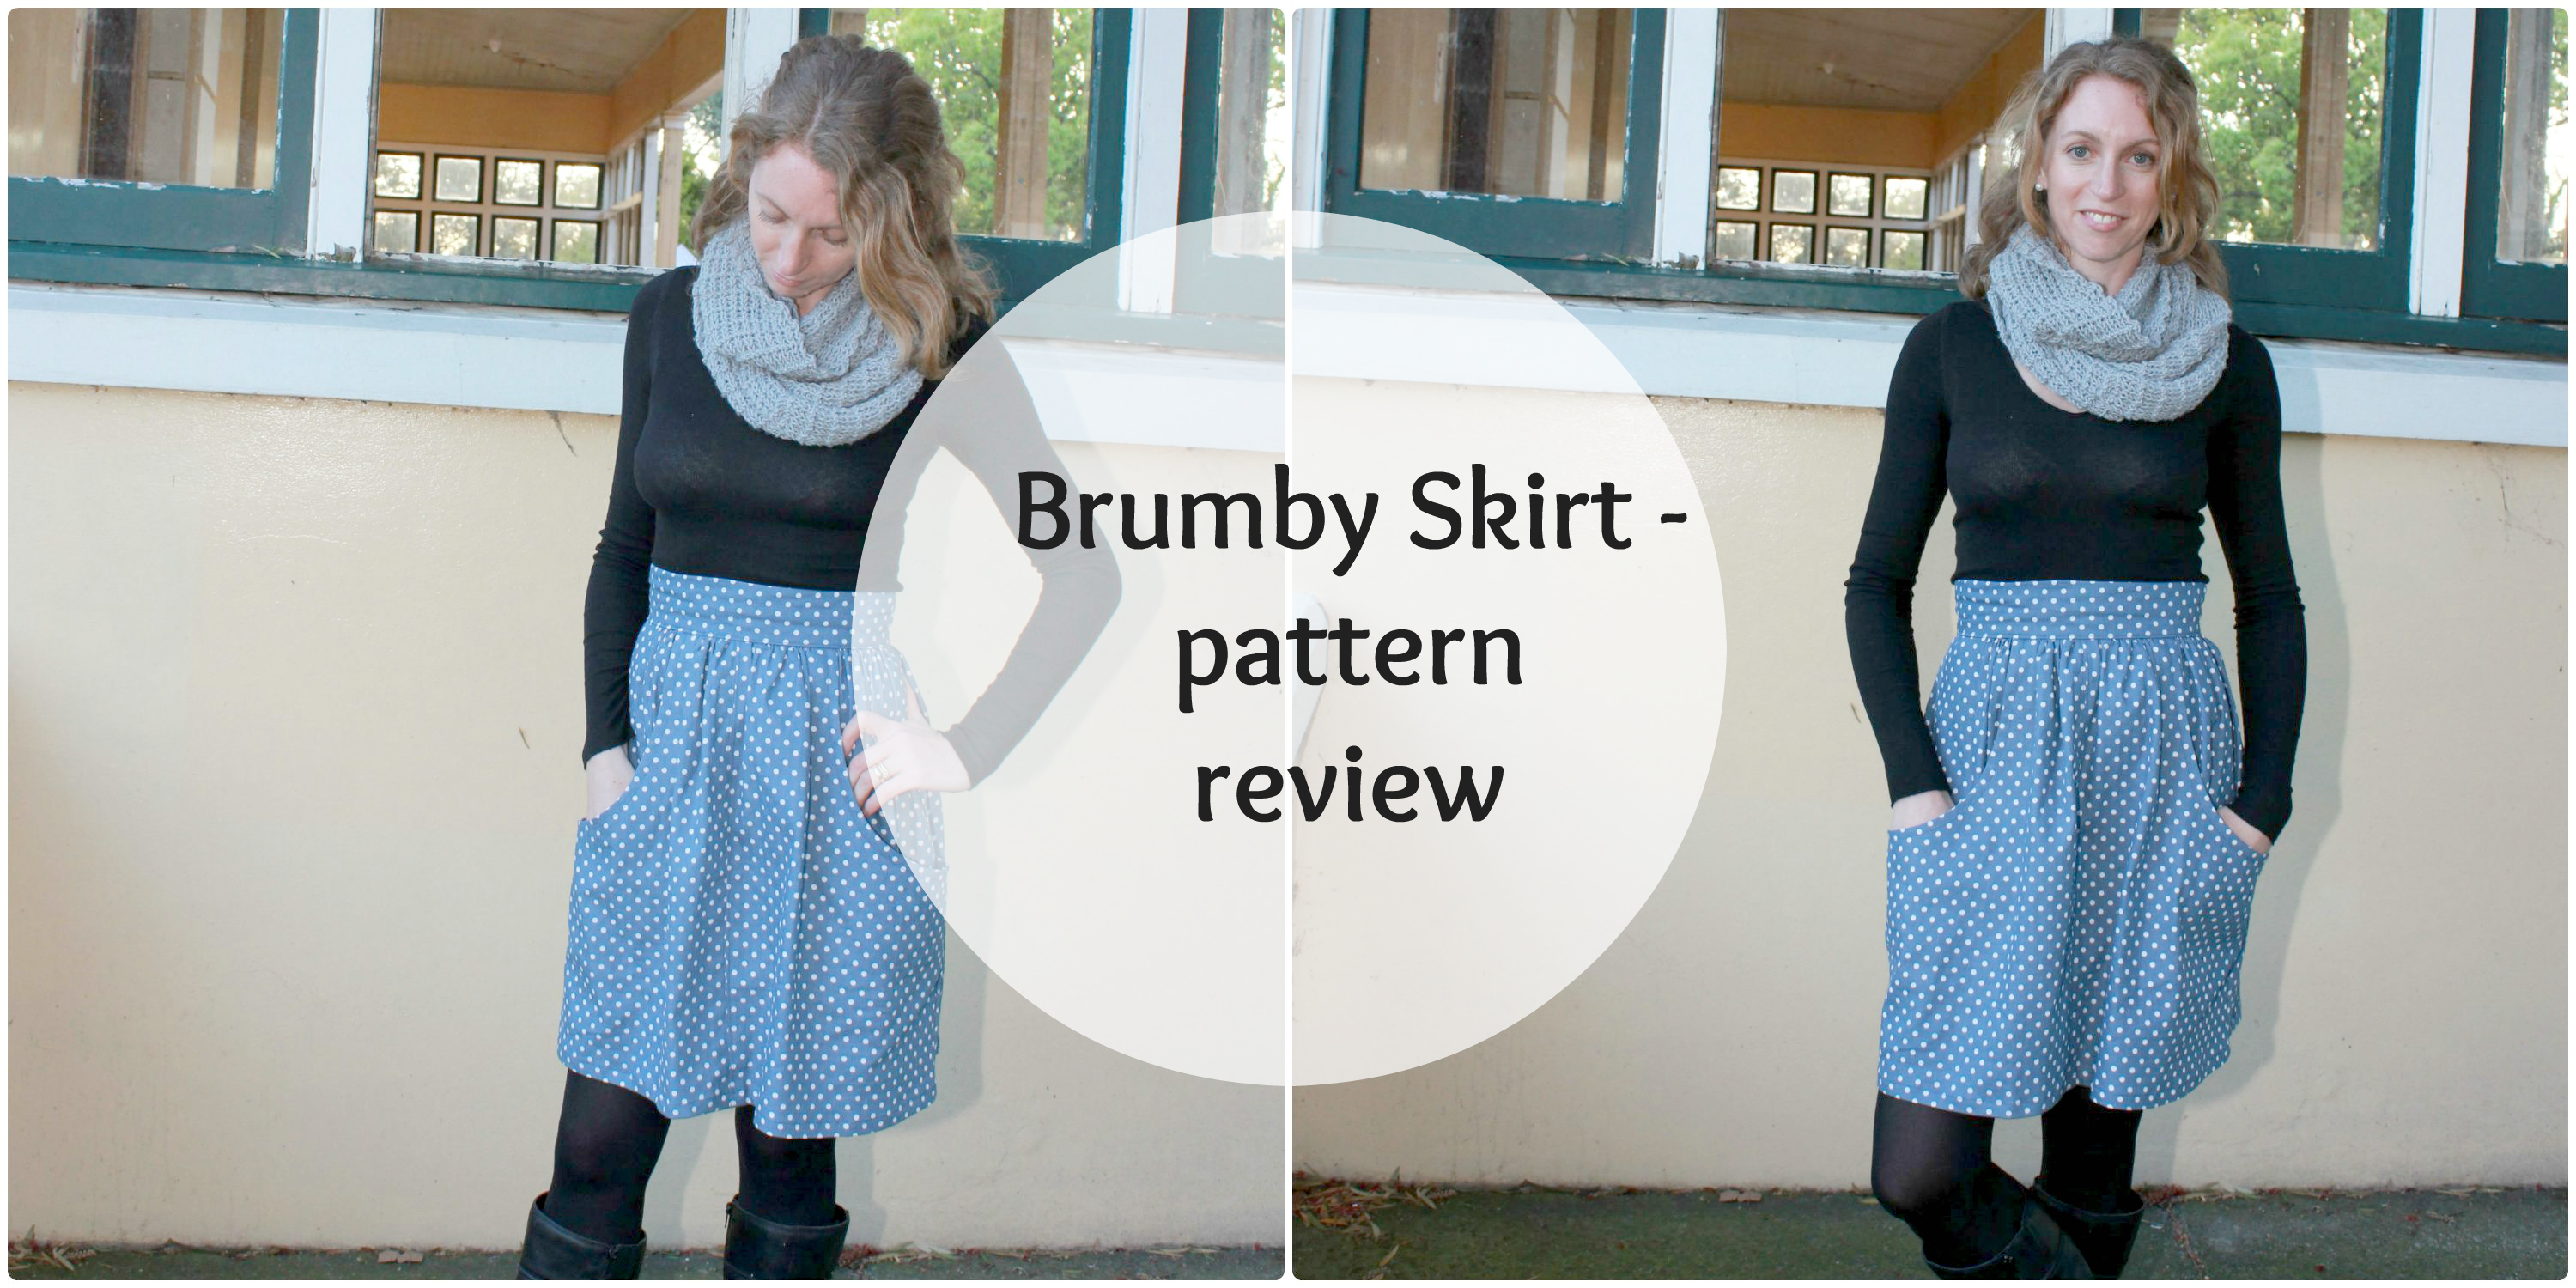 Brumby Skirt - pattern review